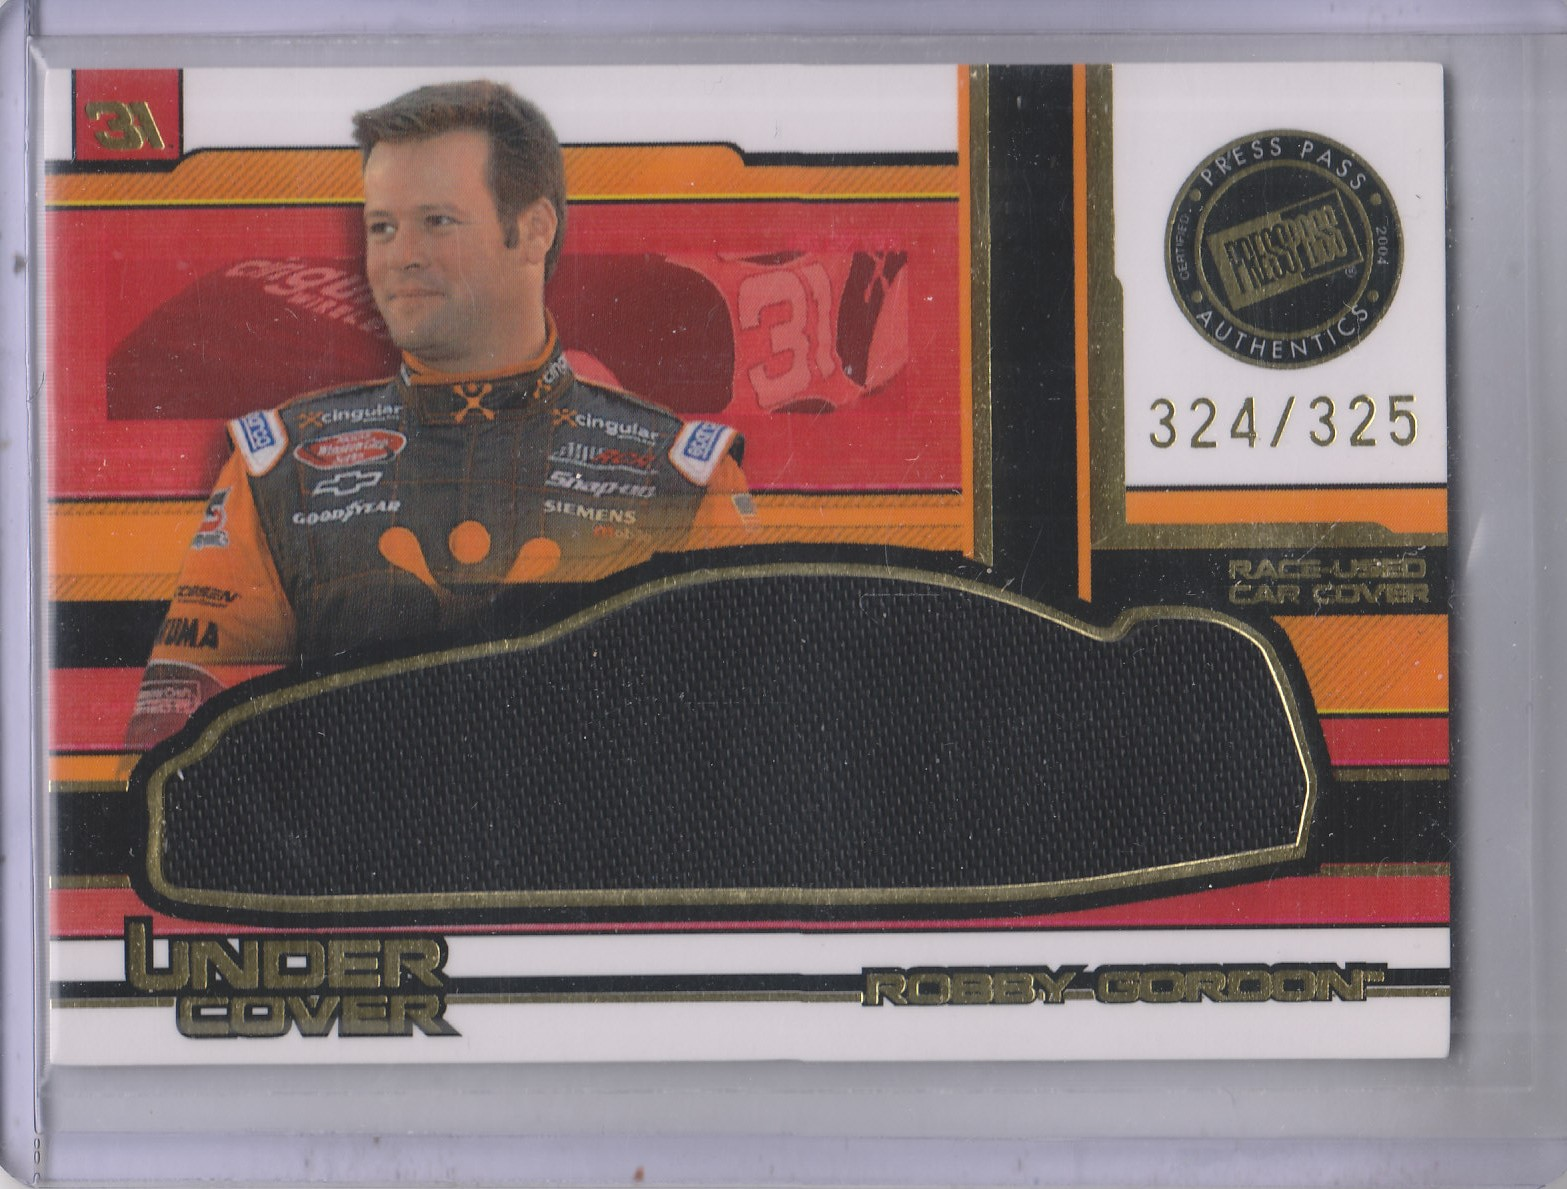 2004 Press Pass Eclipse Under Cover Driver Gold #UCD11 Robby Gordon